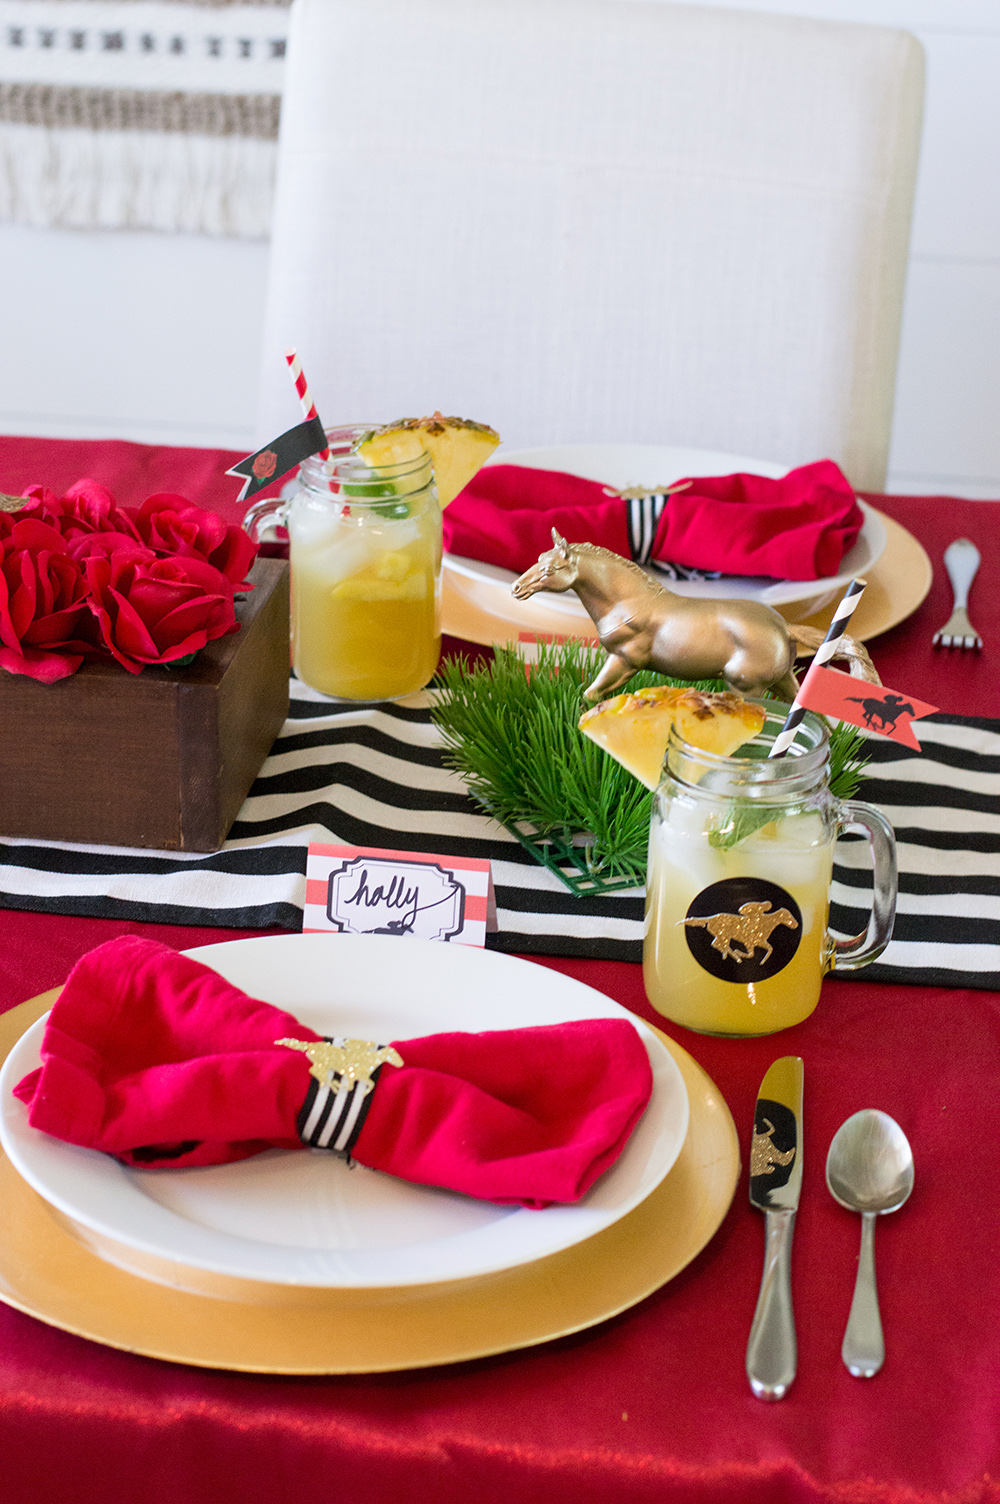 kentucky_derby_place_setting_15.45.52.jpg